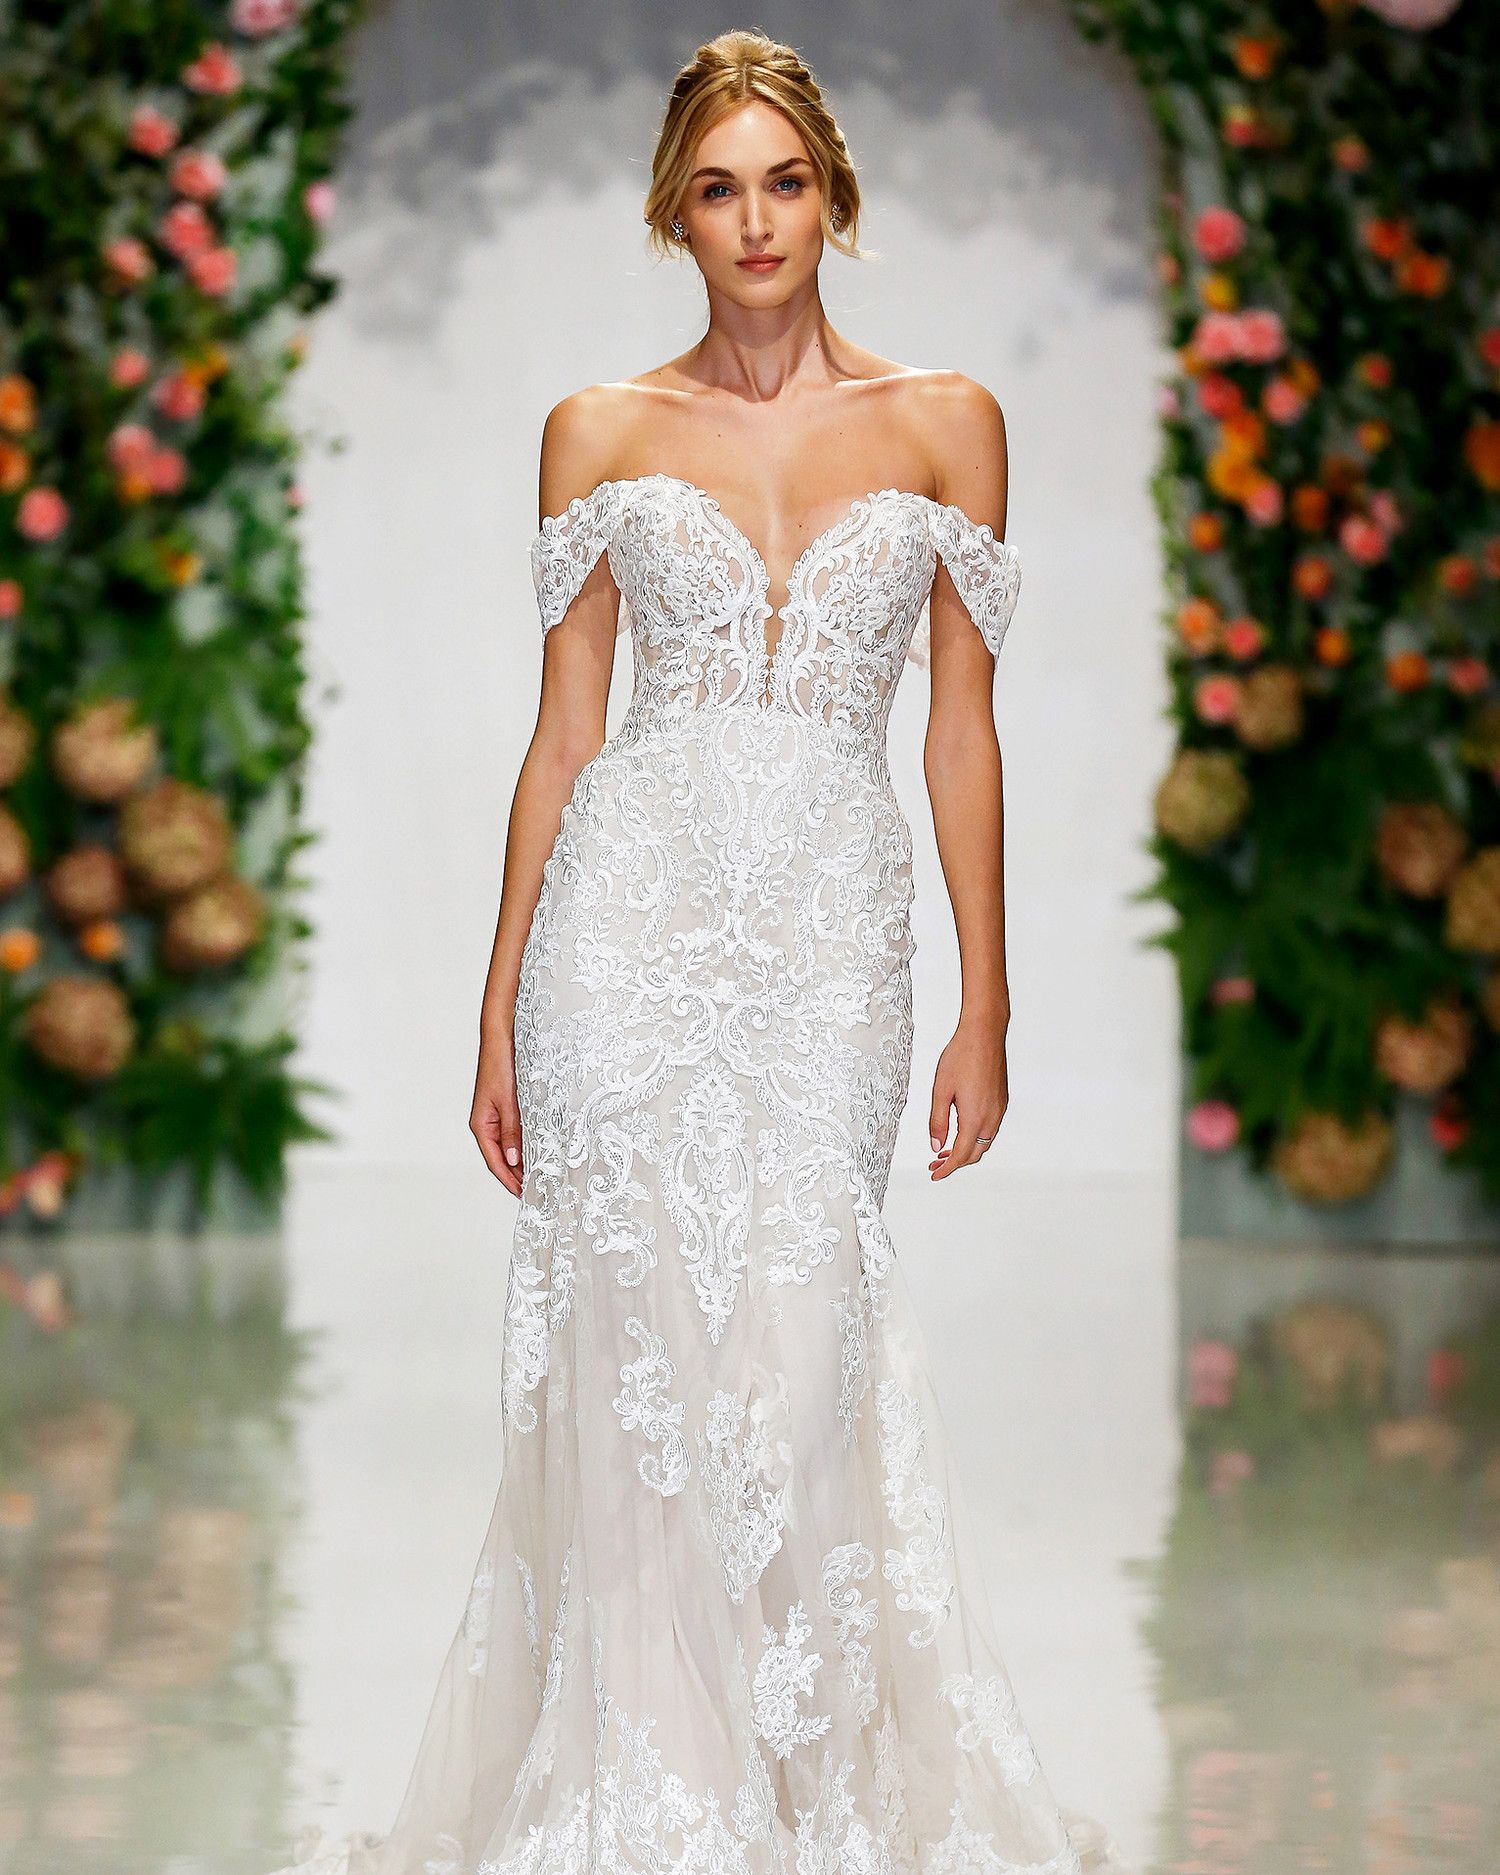 Form Fitting Wedding Gowns: Morilee By Madeline Gardner Fall 2019 Wedding Dress